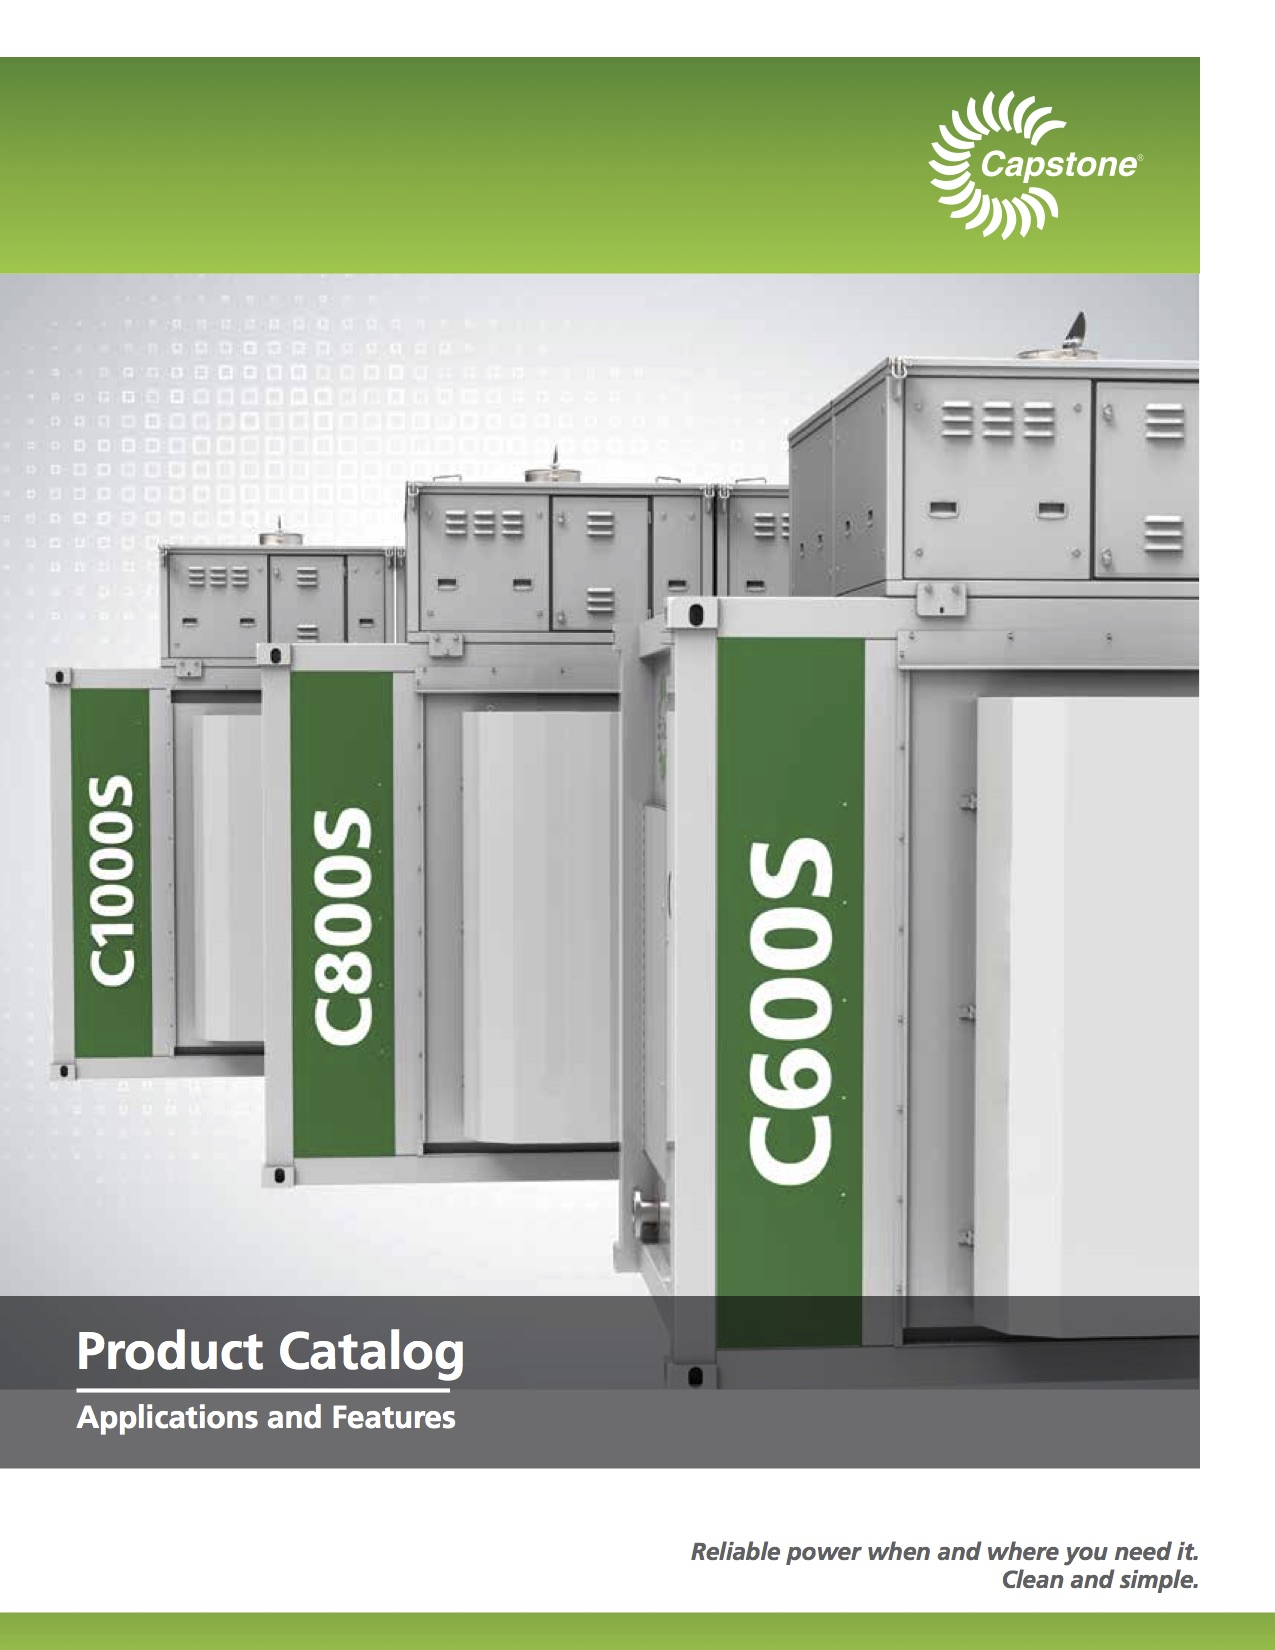 Product Catalog (English)